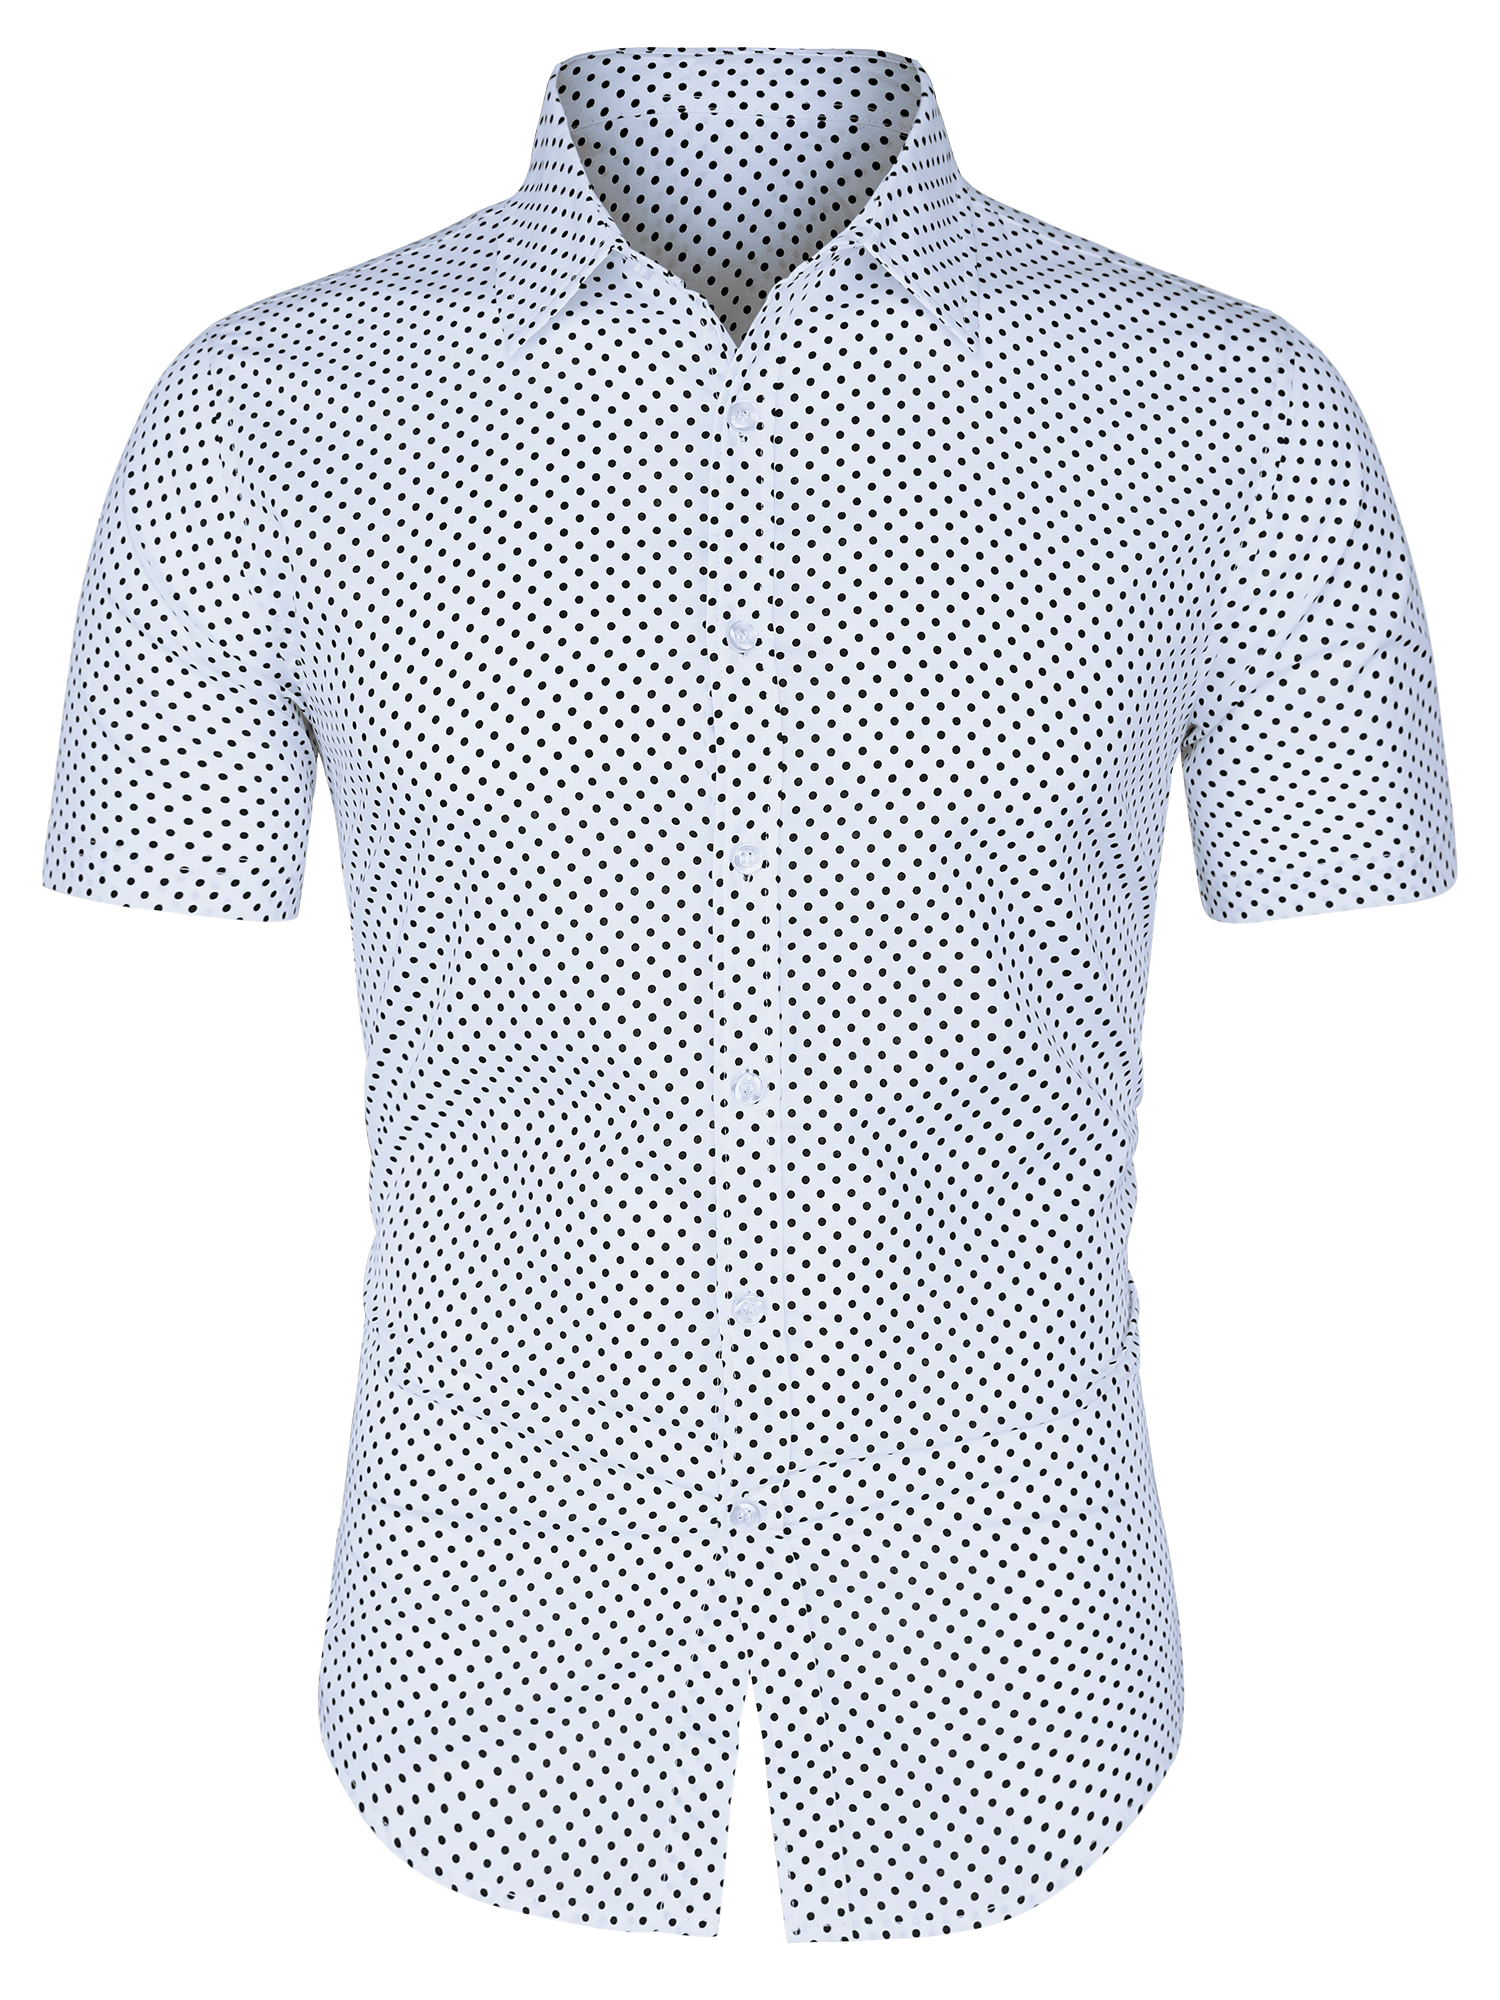 Mens Short Sleeves Single Breasted Cotton Dots Shirt White M